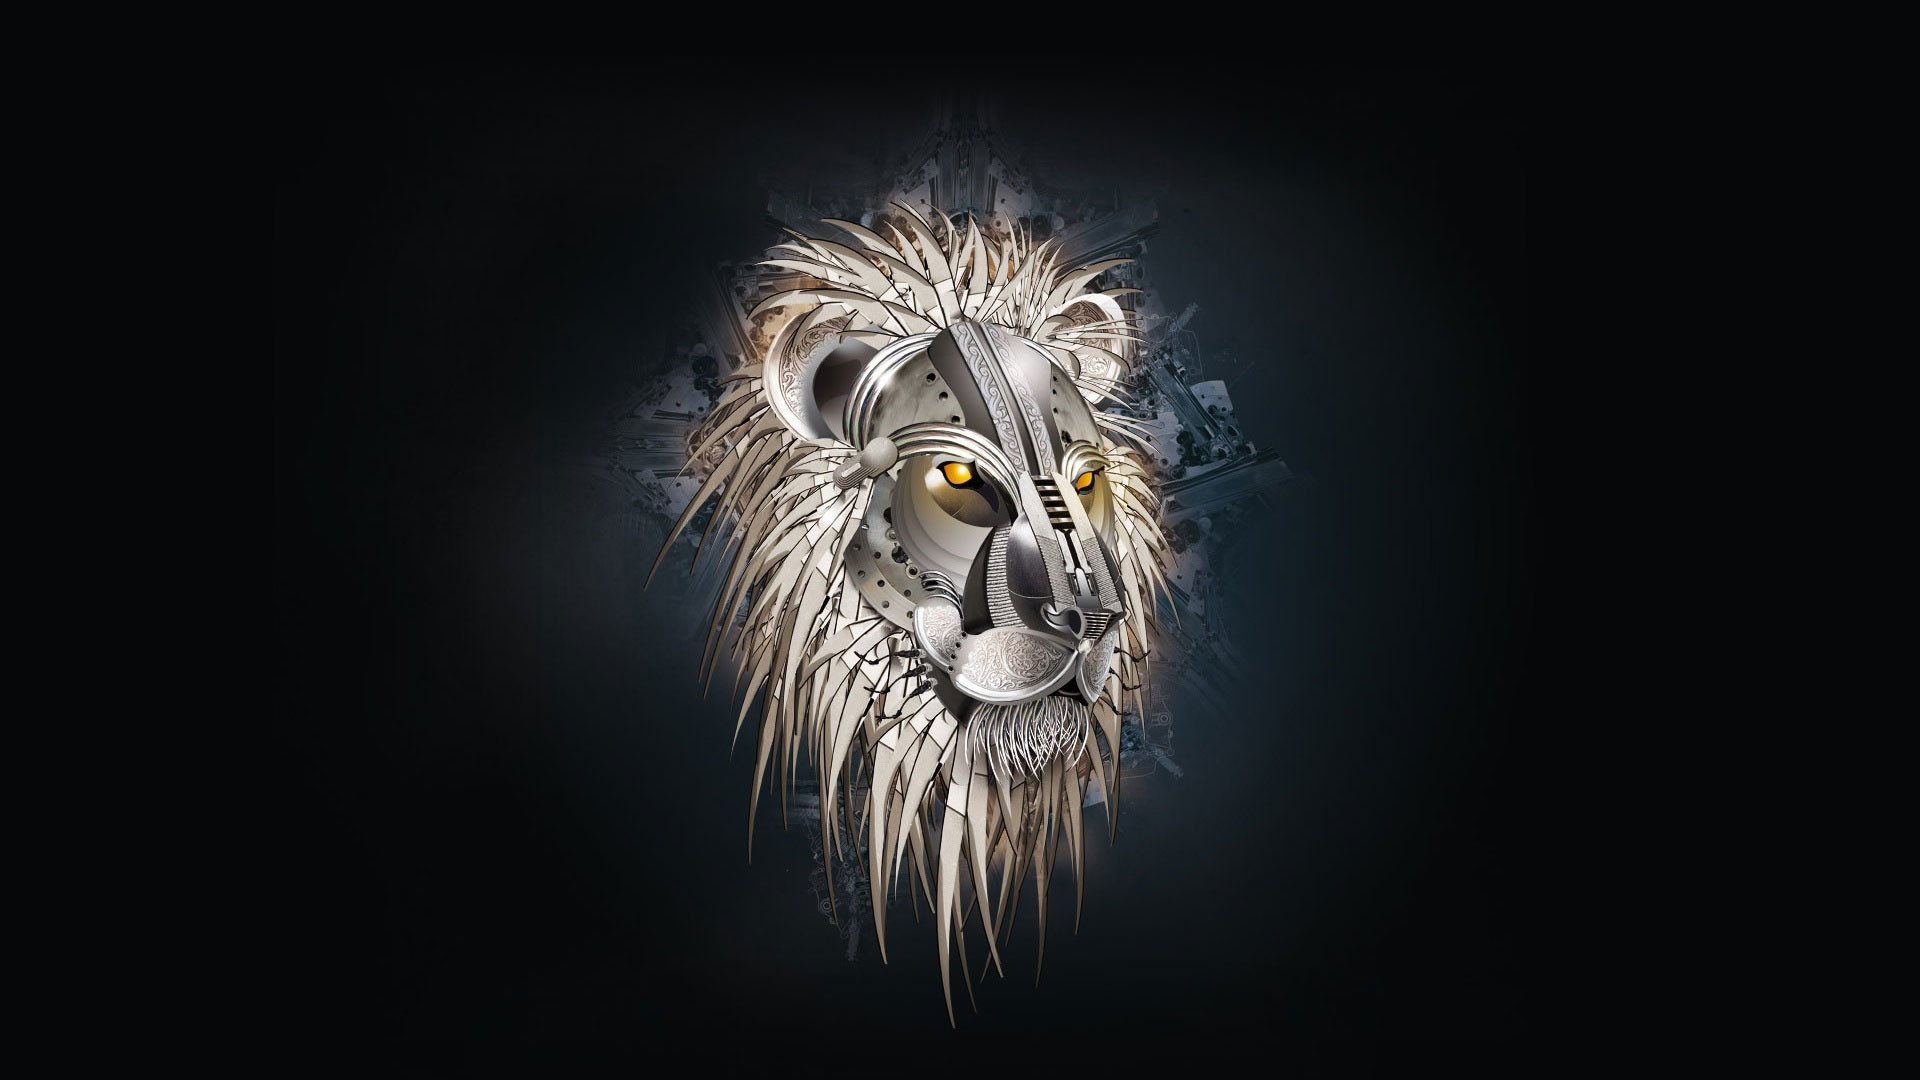 Lion Wallpapers Phone Hd 1080p Abstract Iphone Es